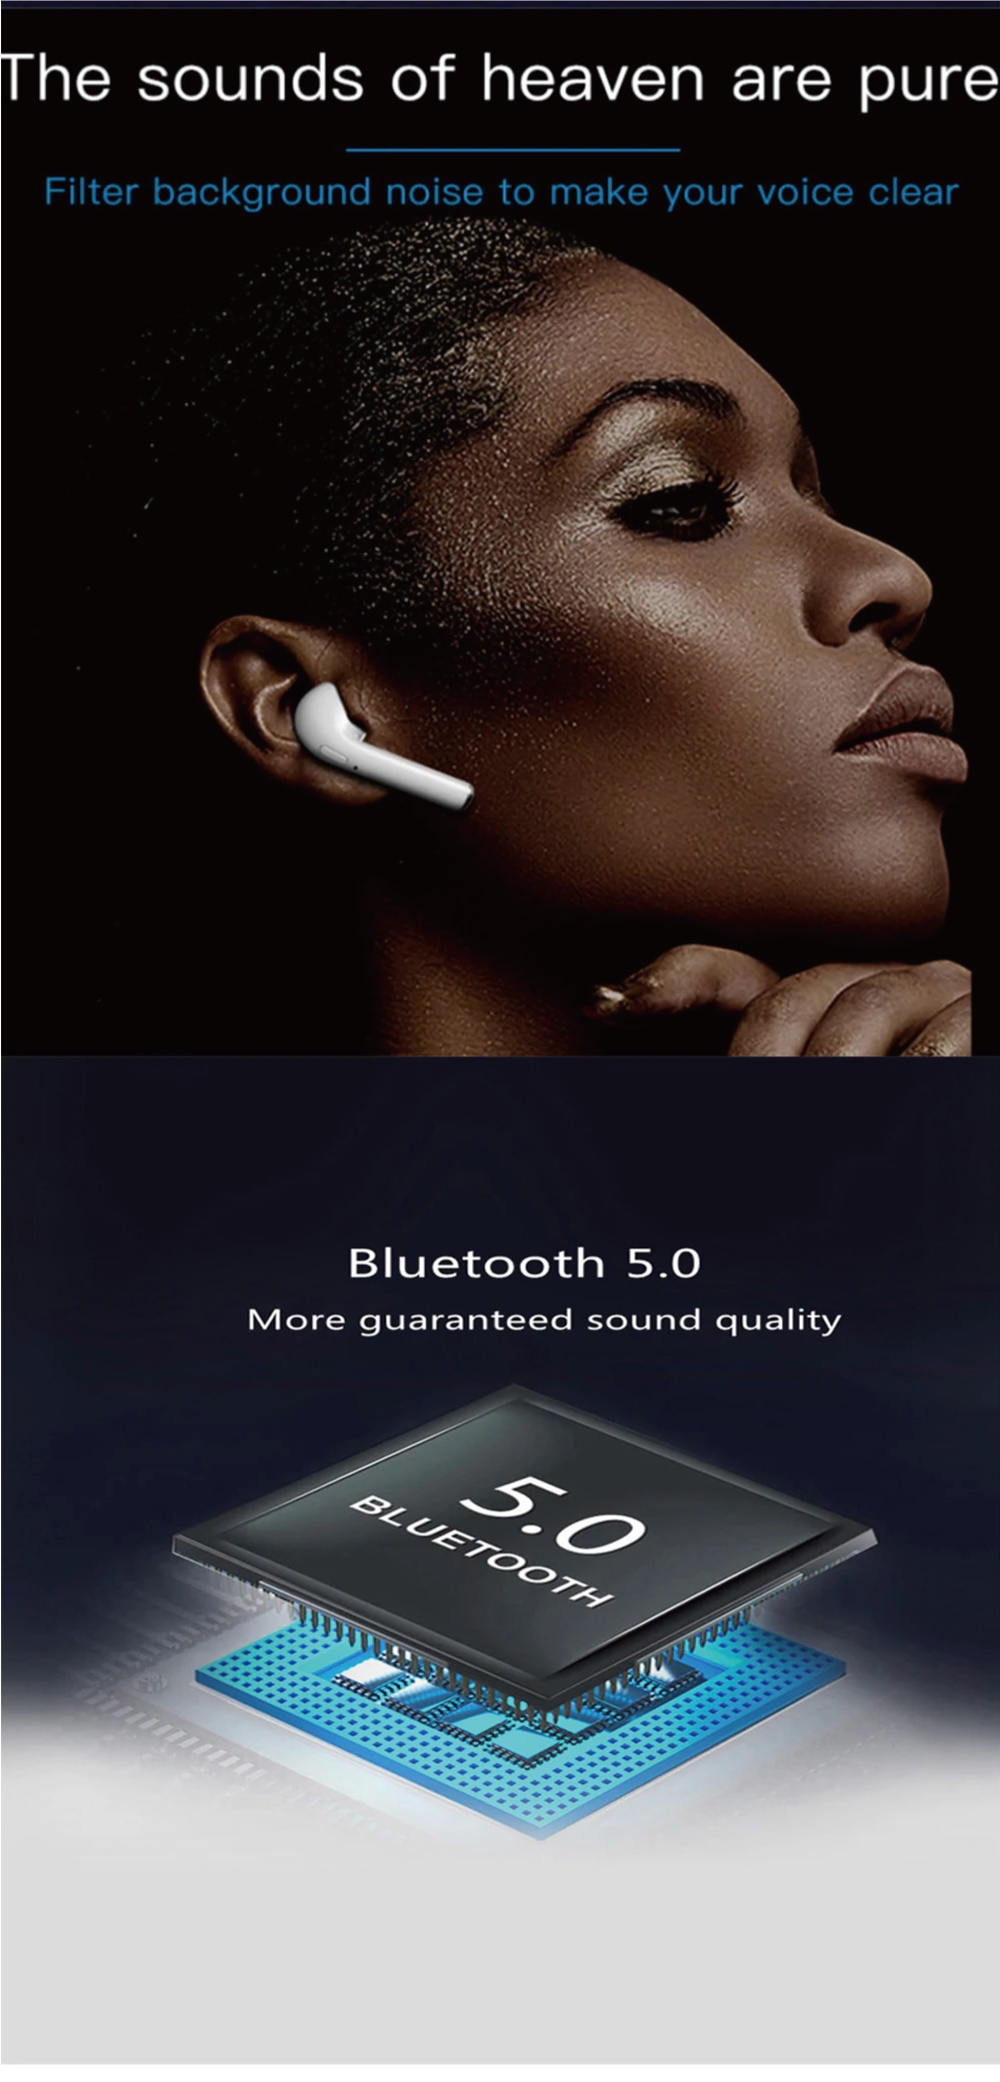 Buy 2019 Latest Version i11/i12/i18/V8 TWS Wireless Bluetooth 5 0 Earphone  Earbuds for iPhone Android Deals for only S$29 9 instead of S$29 9